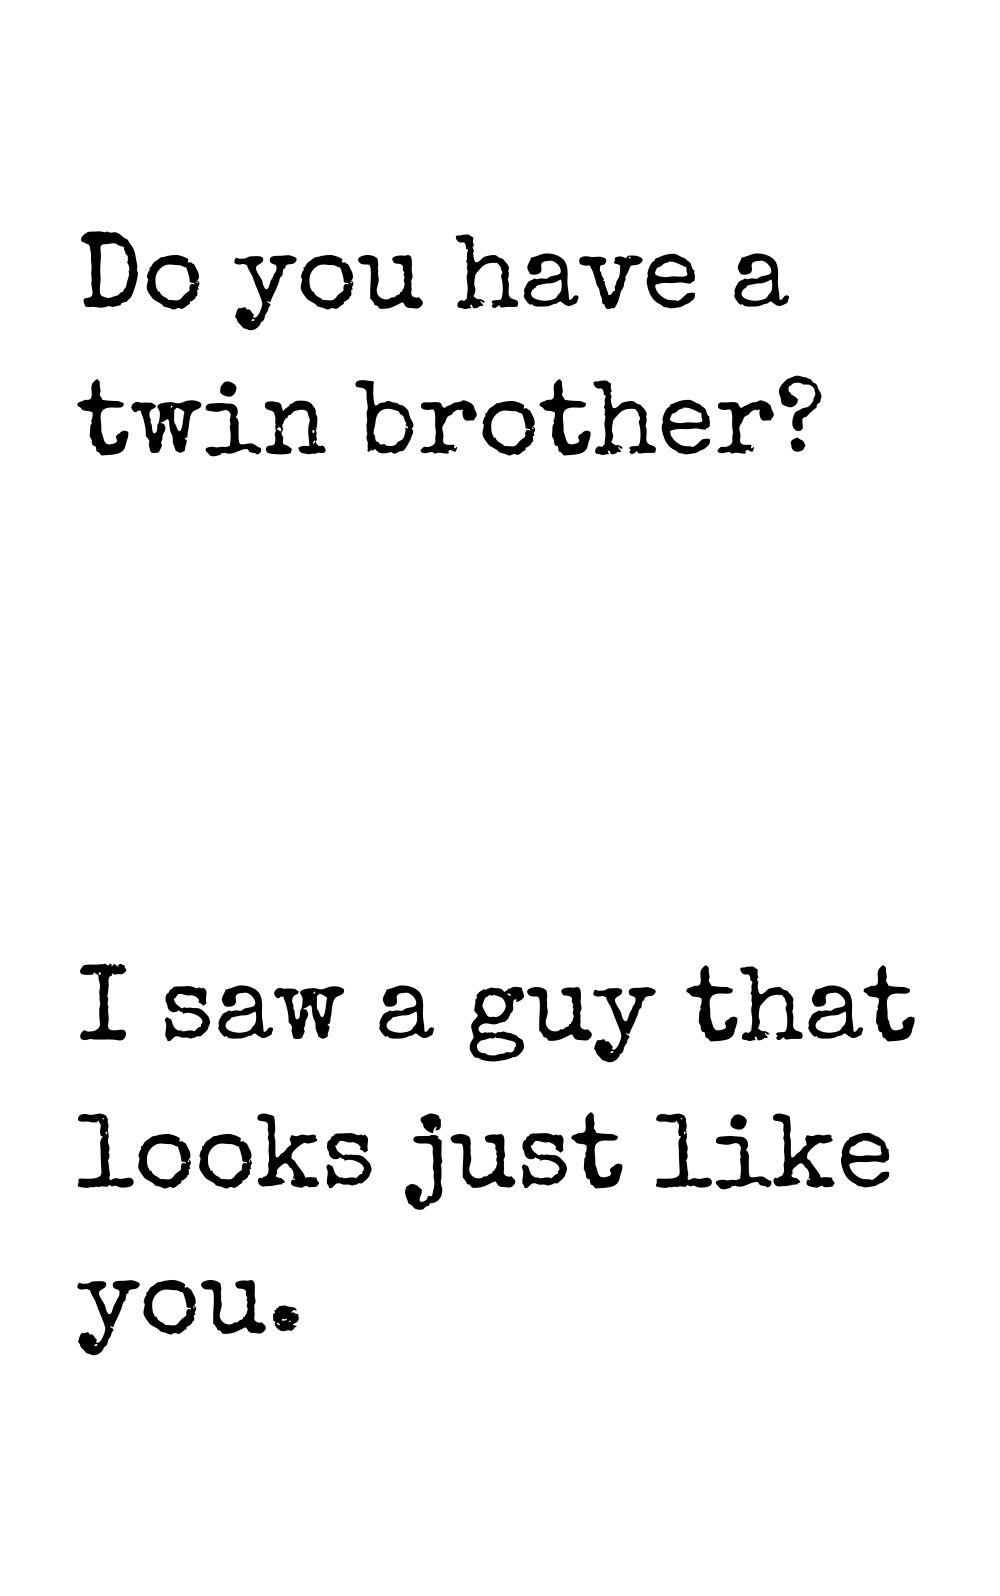 do you have a twin brother